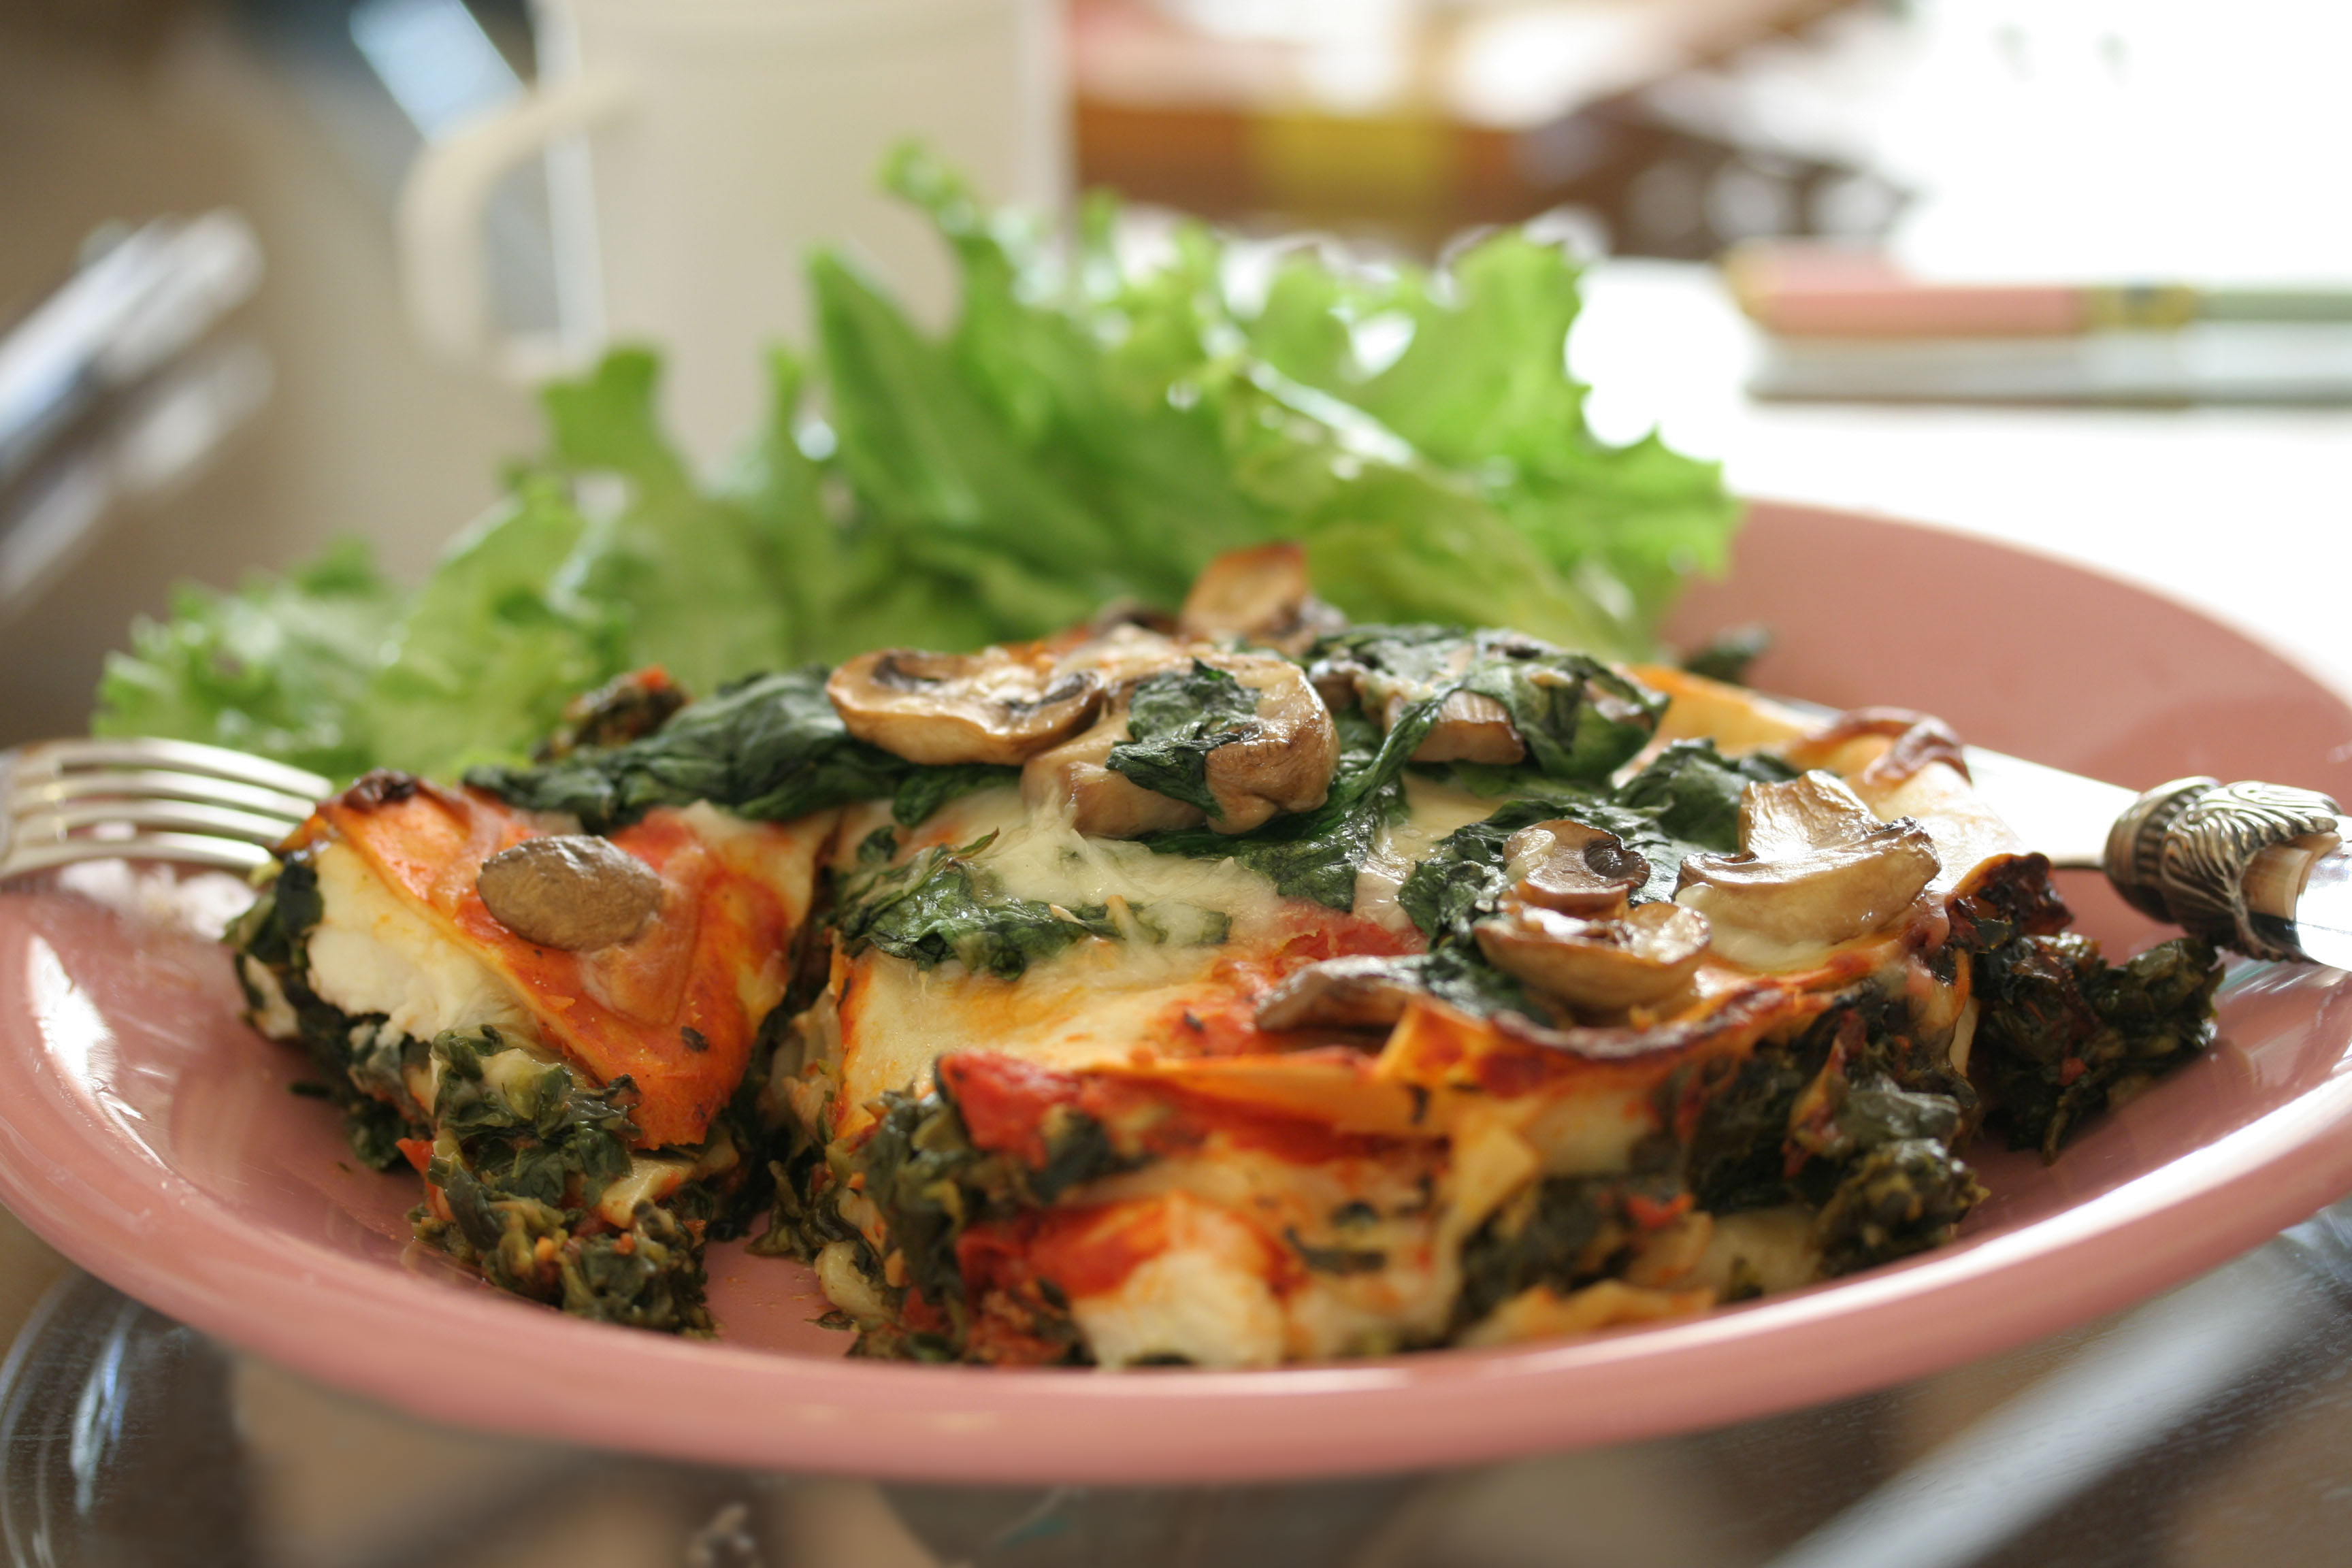 File:Vegan mushroom and spinach lasagna.jpg - Wikimedia Commons